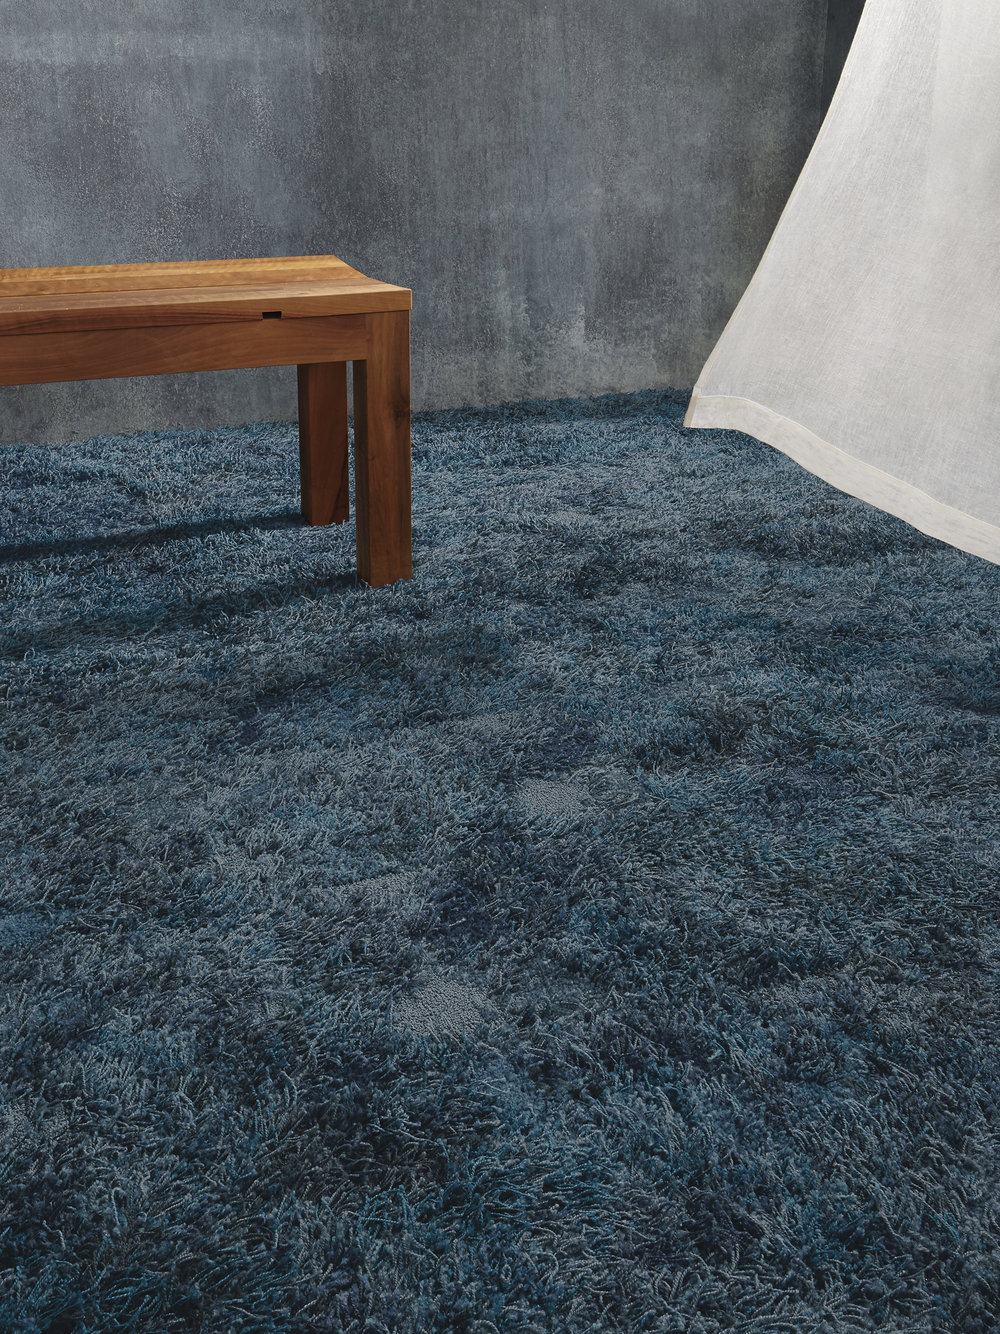 SHAW FLOORS - CINEMATOGRAPHY • EDITORIAL • RETOUCHING • COLOR & FINISH